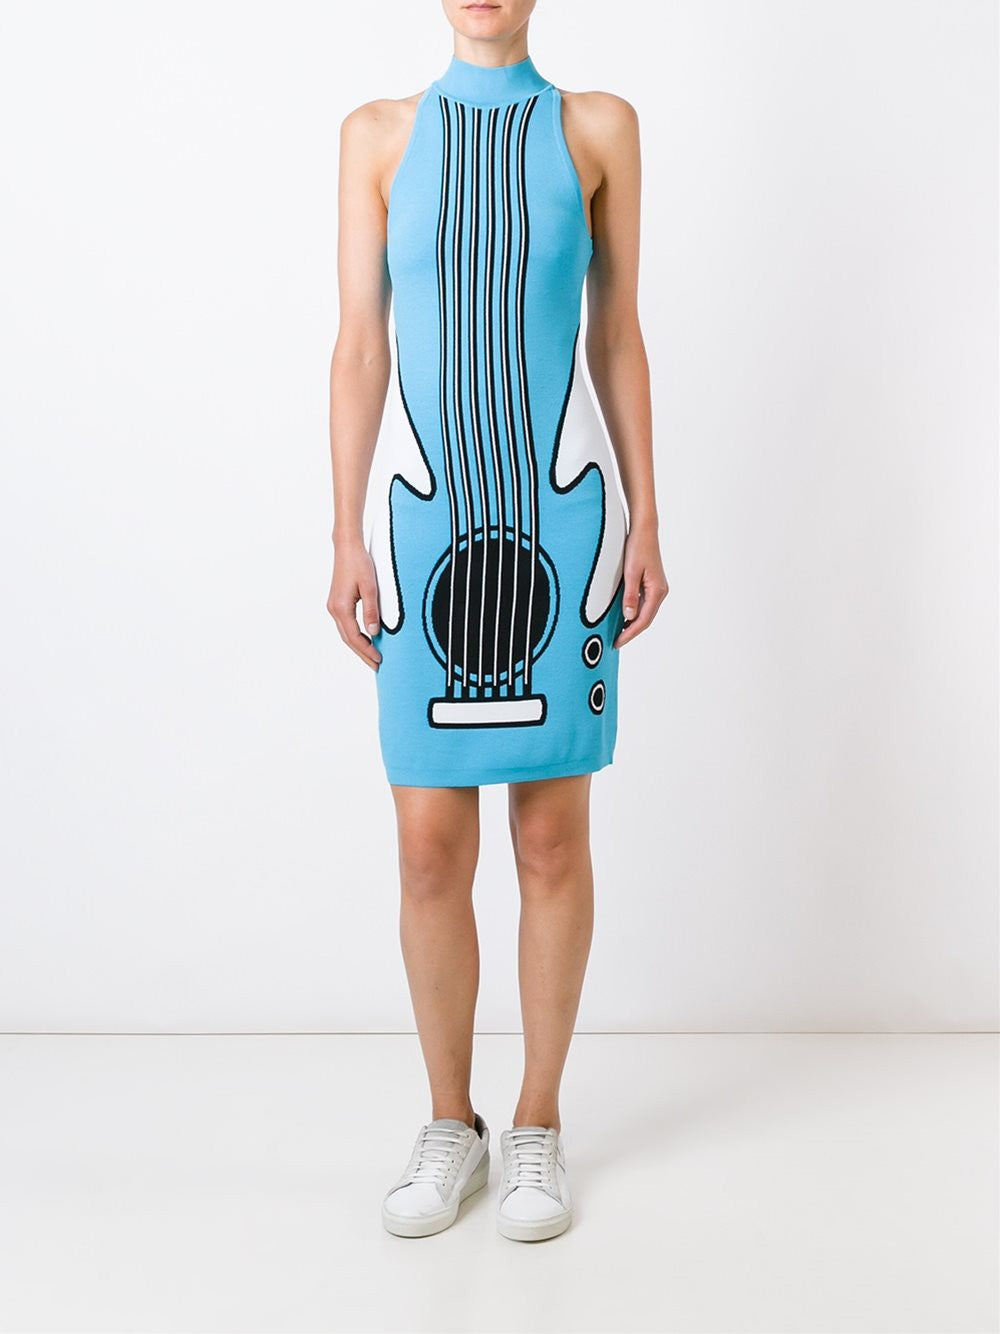 Knit Guitar Dress | A0483 5901